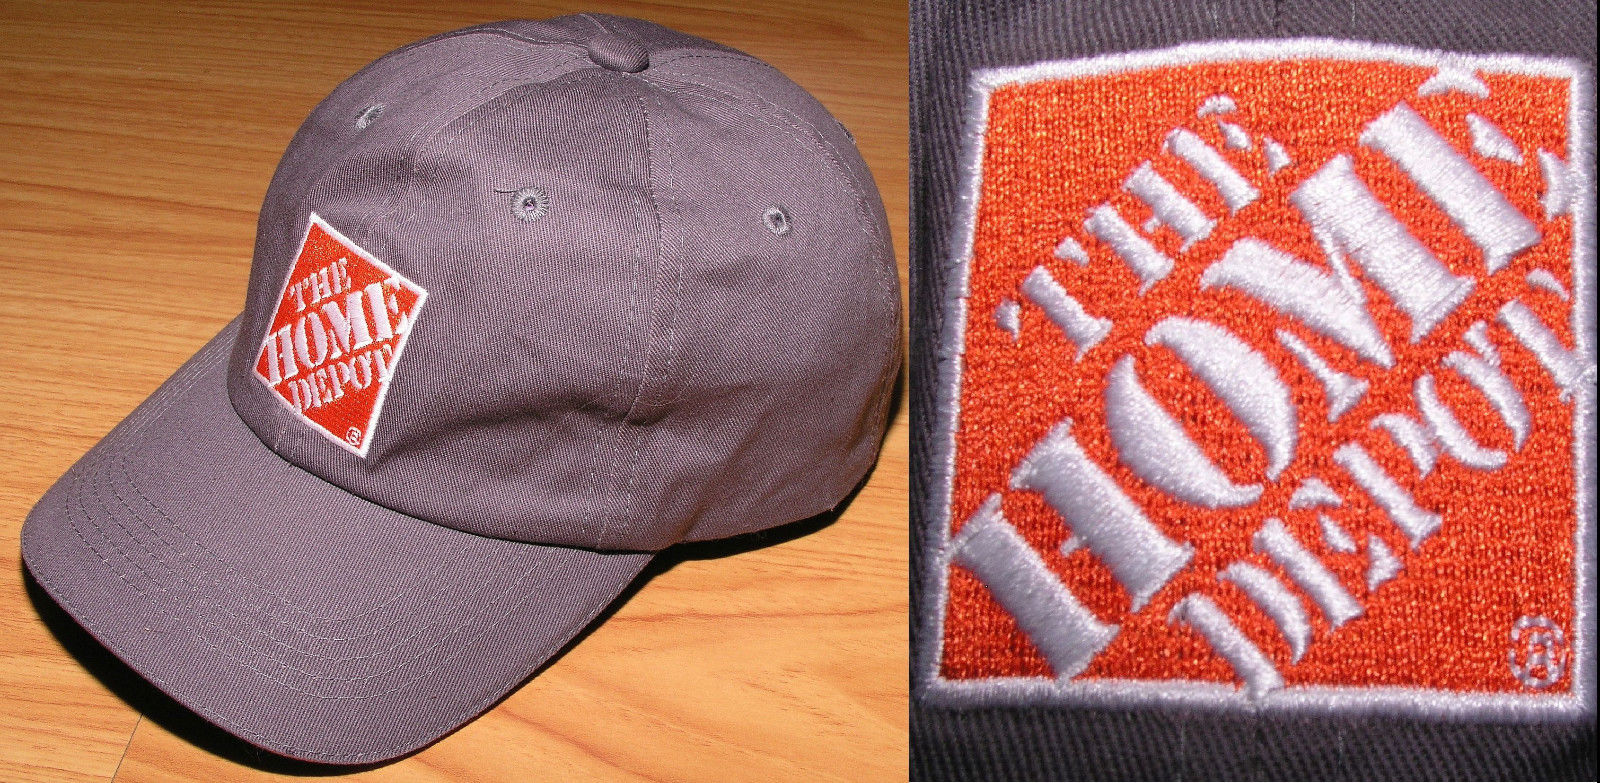 c19c0da568c Baseball Cap The Home Depot Logo Hat Cotton and 50 similar items